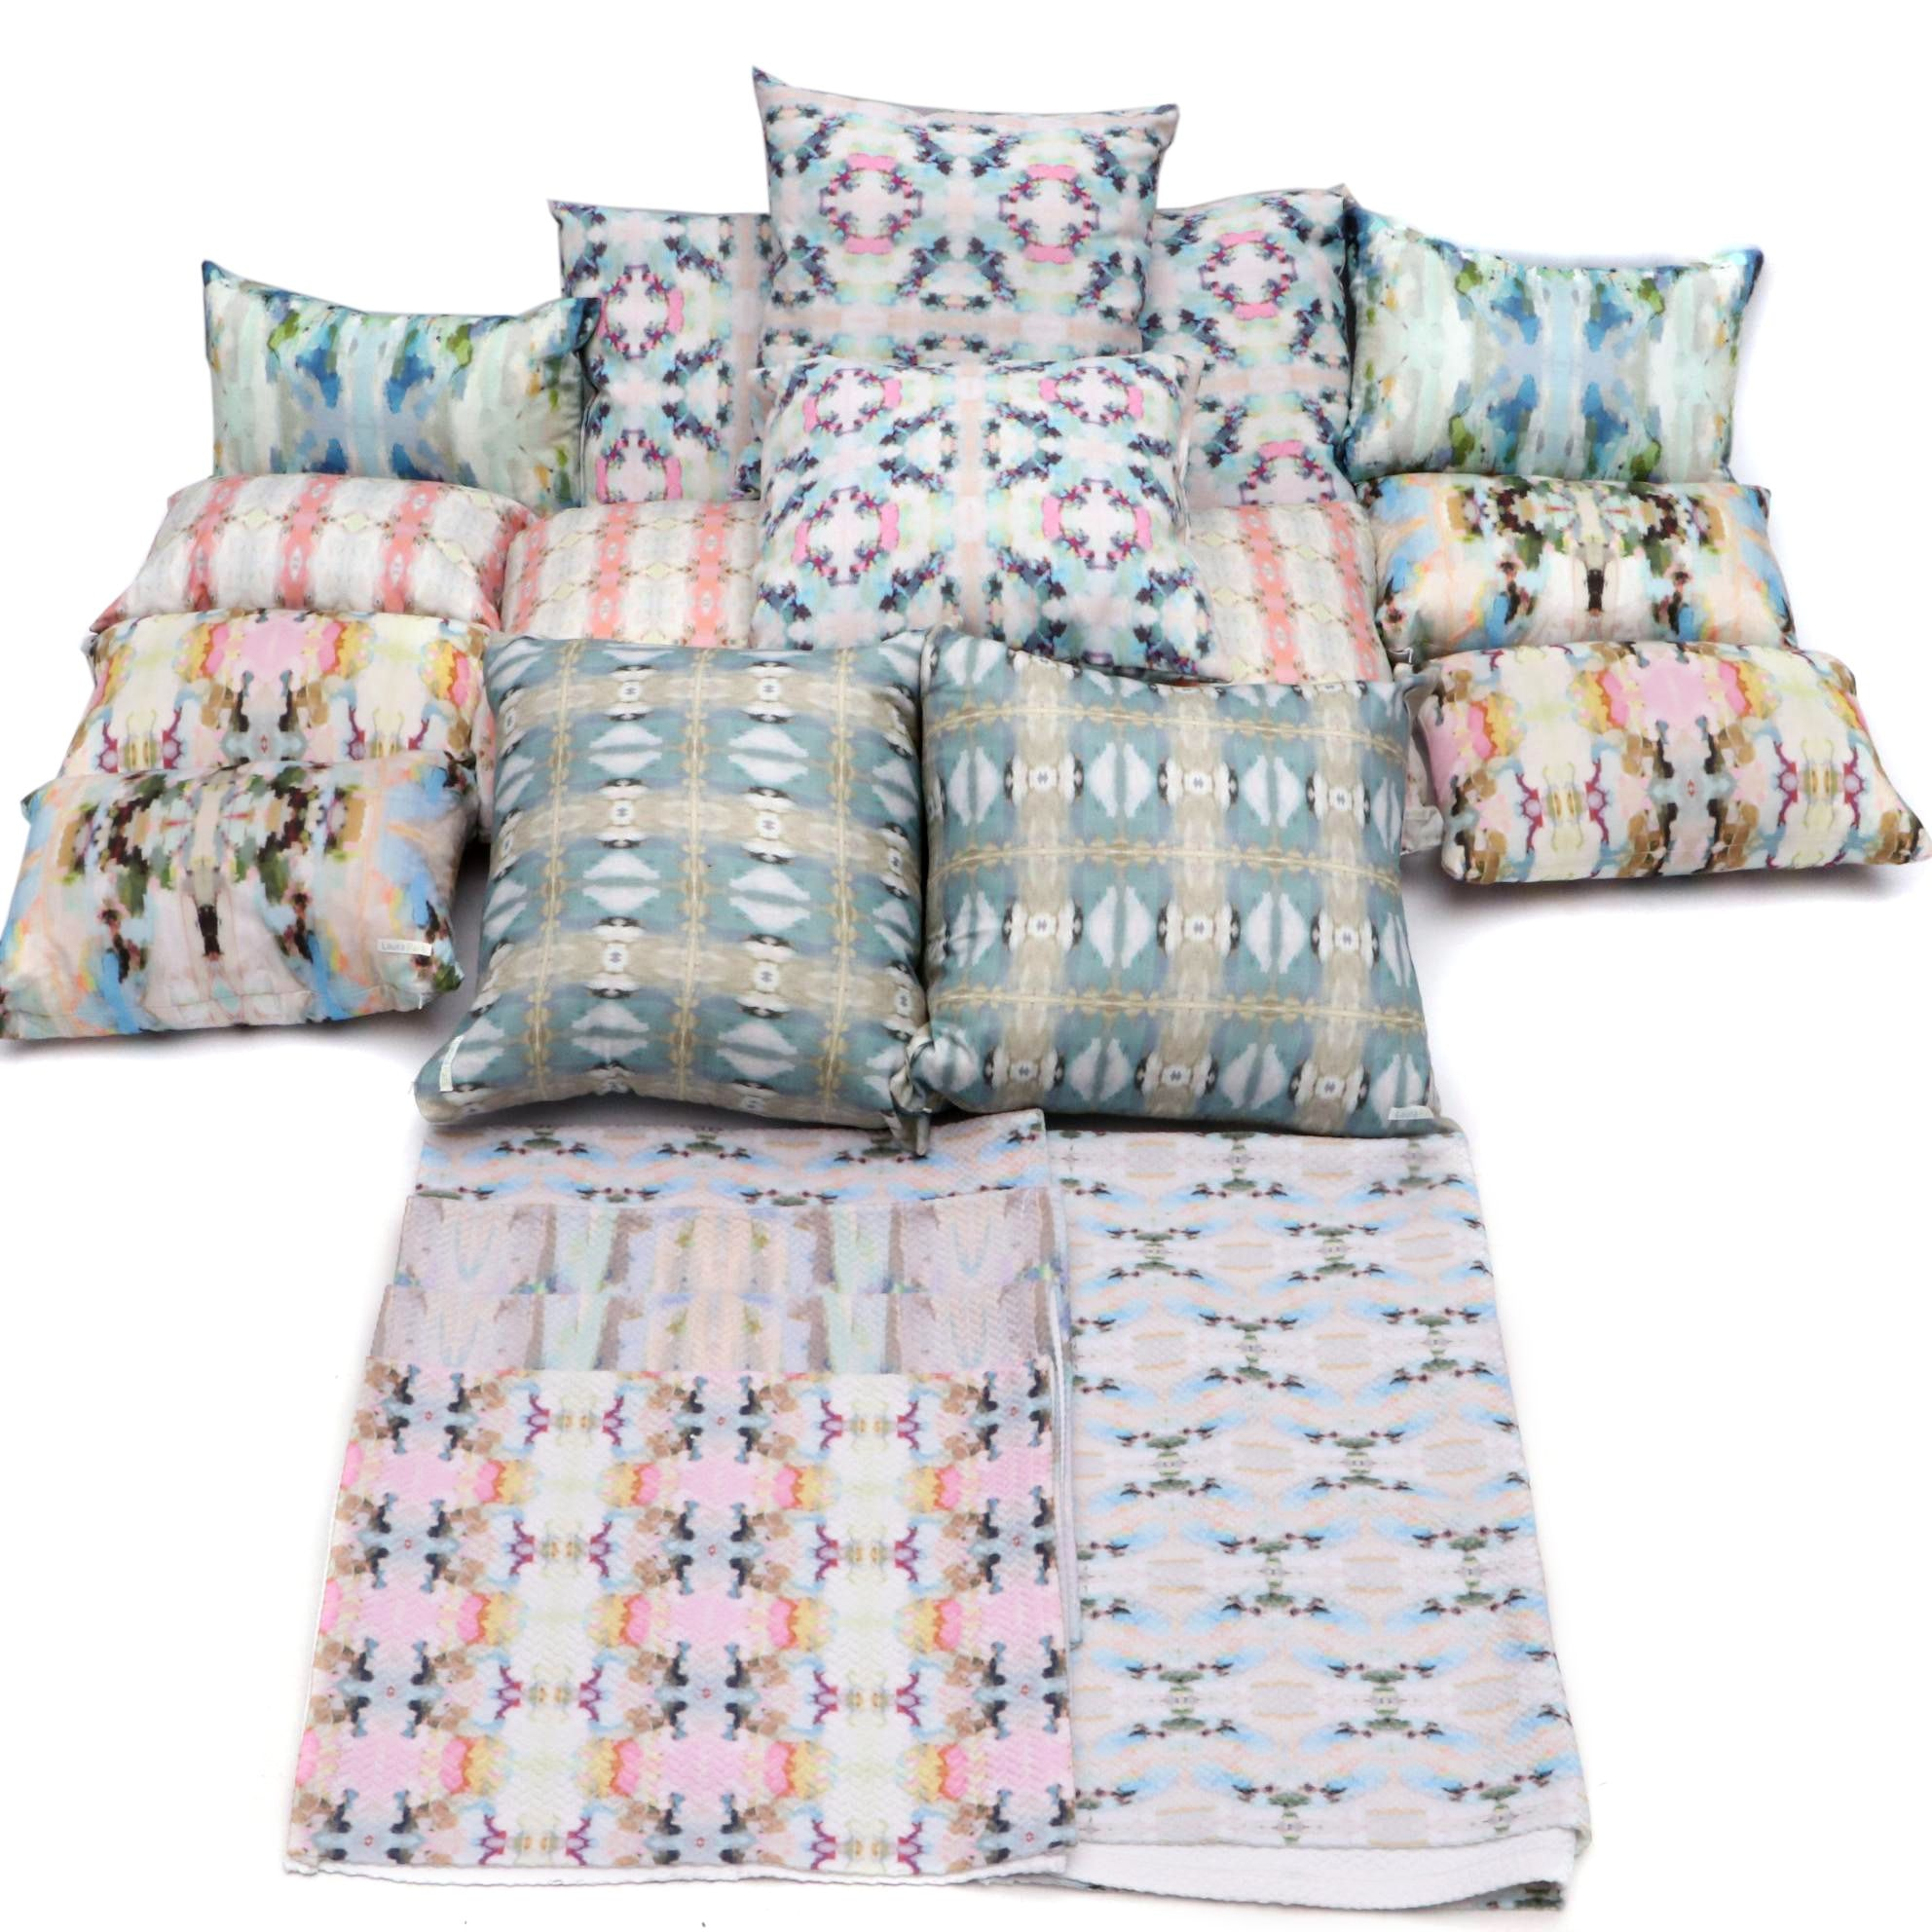 Laura Park Decorative Pillows and Assorted Sized Linens